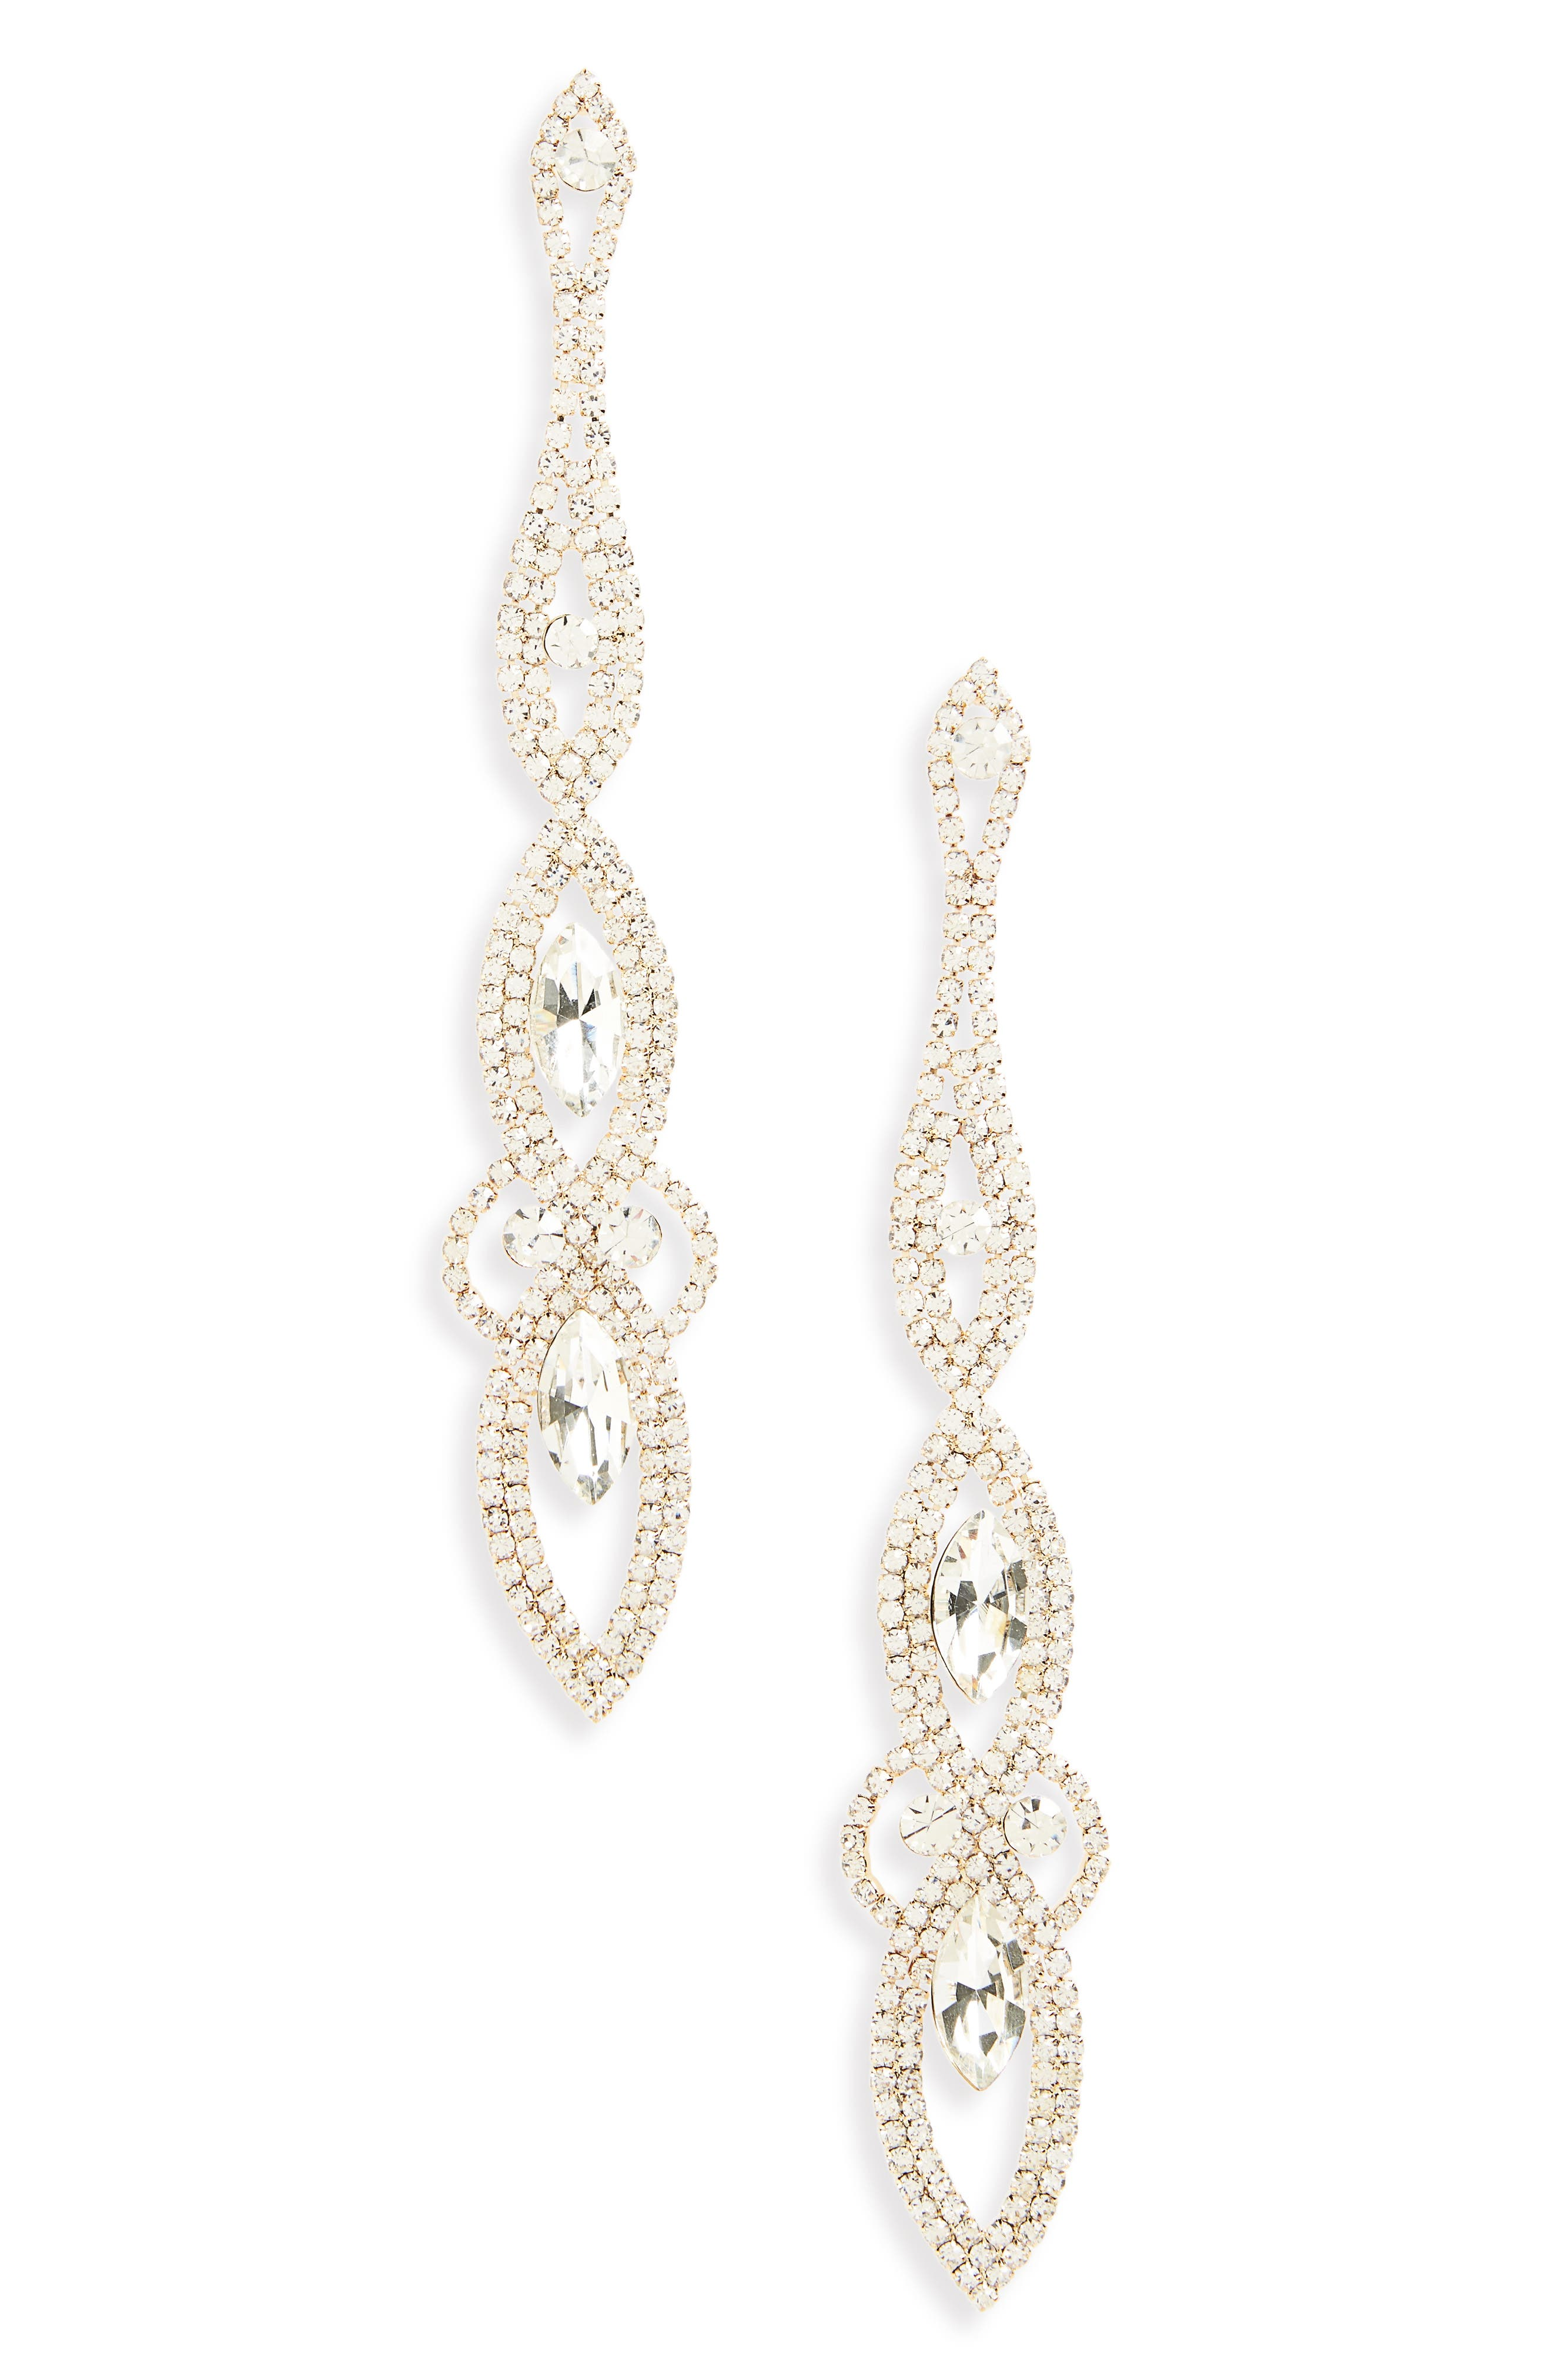 Long Crystal Statement Earrings,                             Main thumbnail 1, color,                             Gold/ Crystal